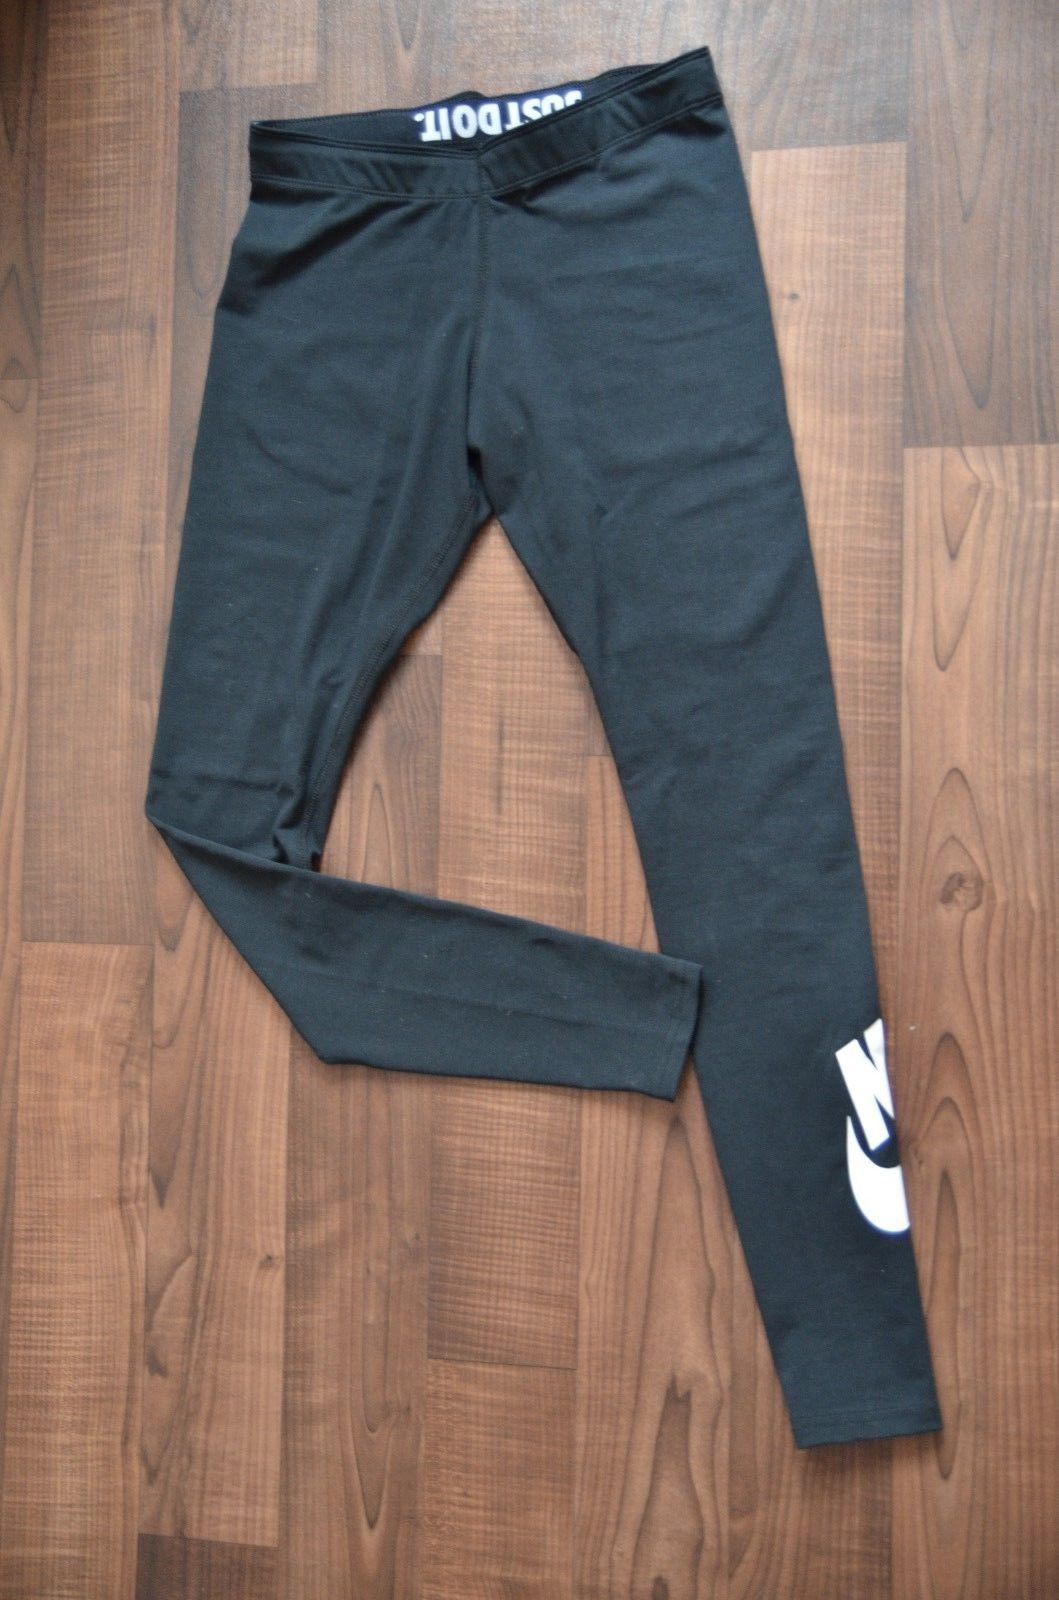 Nike Leggings Gr. 36 S Sporthose Sportleggings Hose Joggingshose